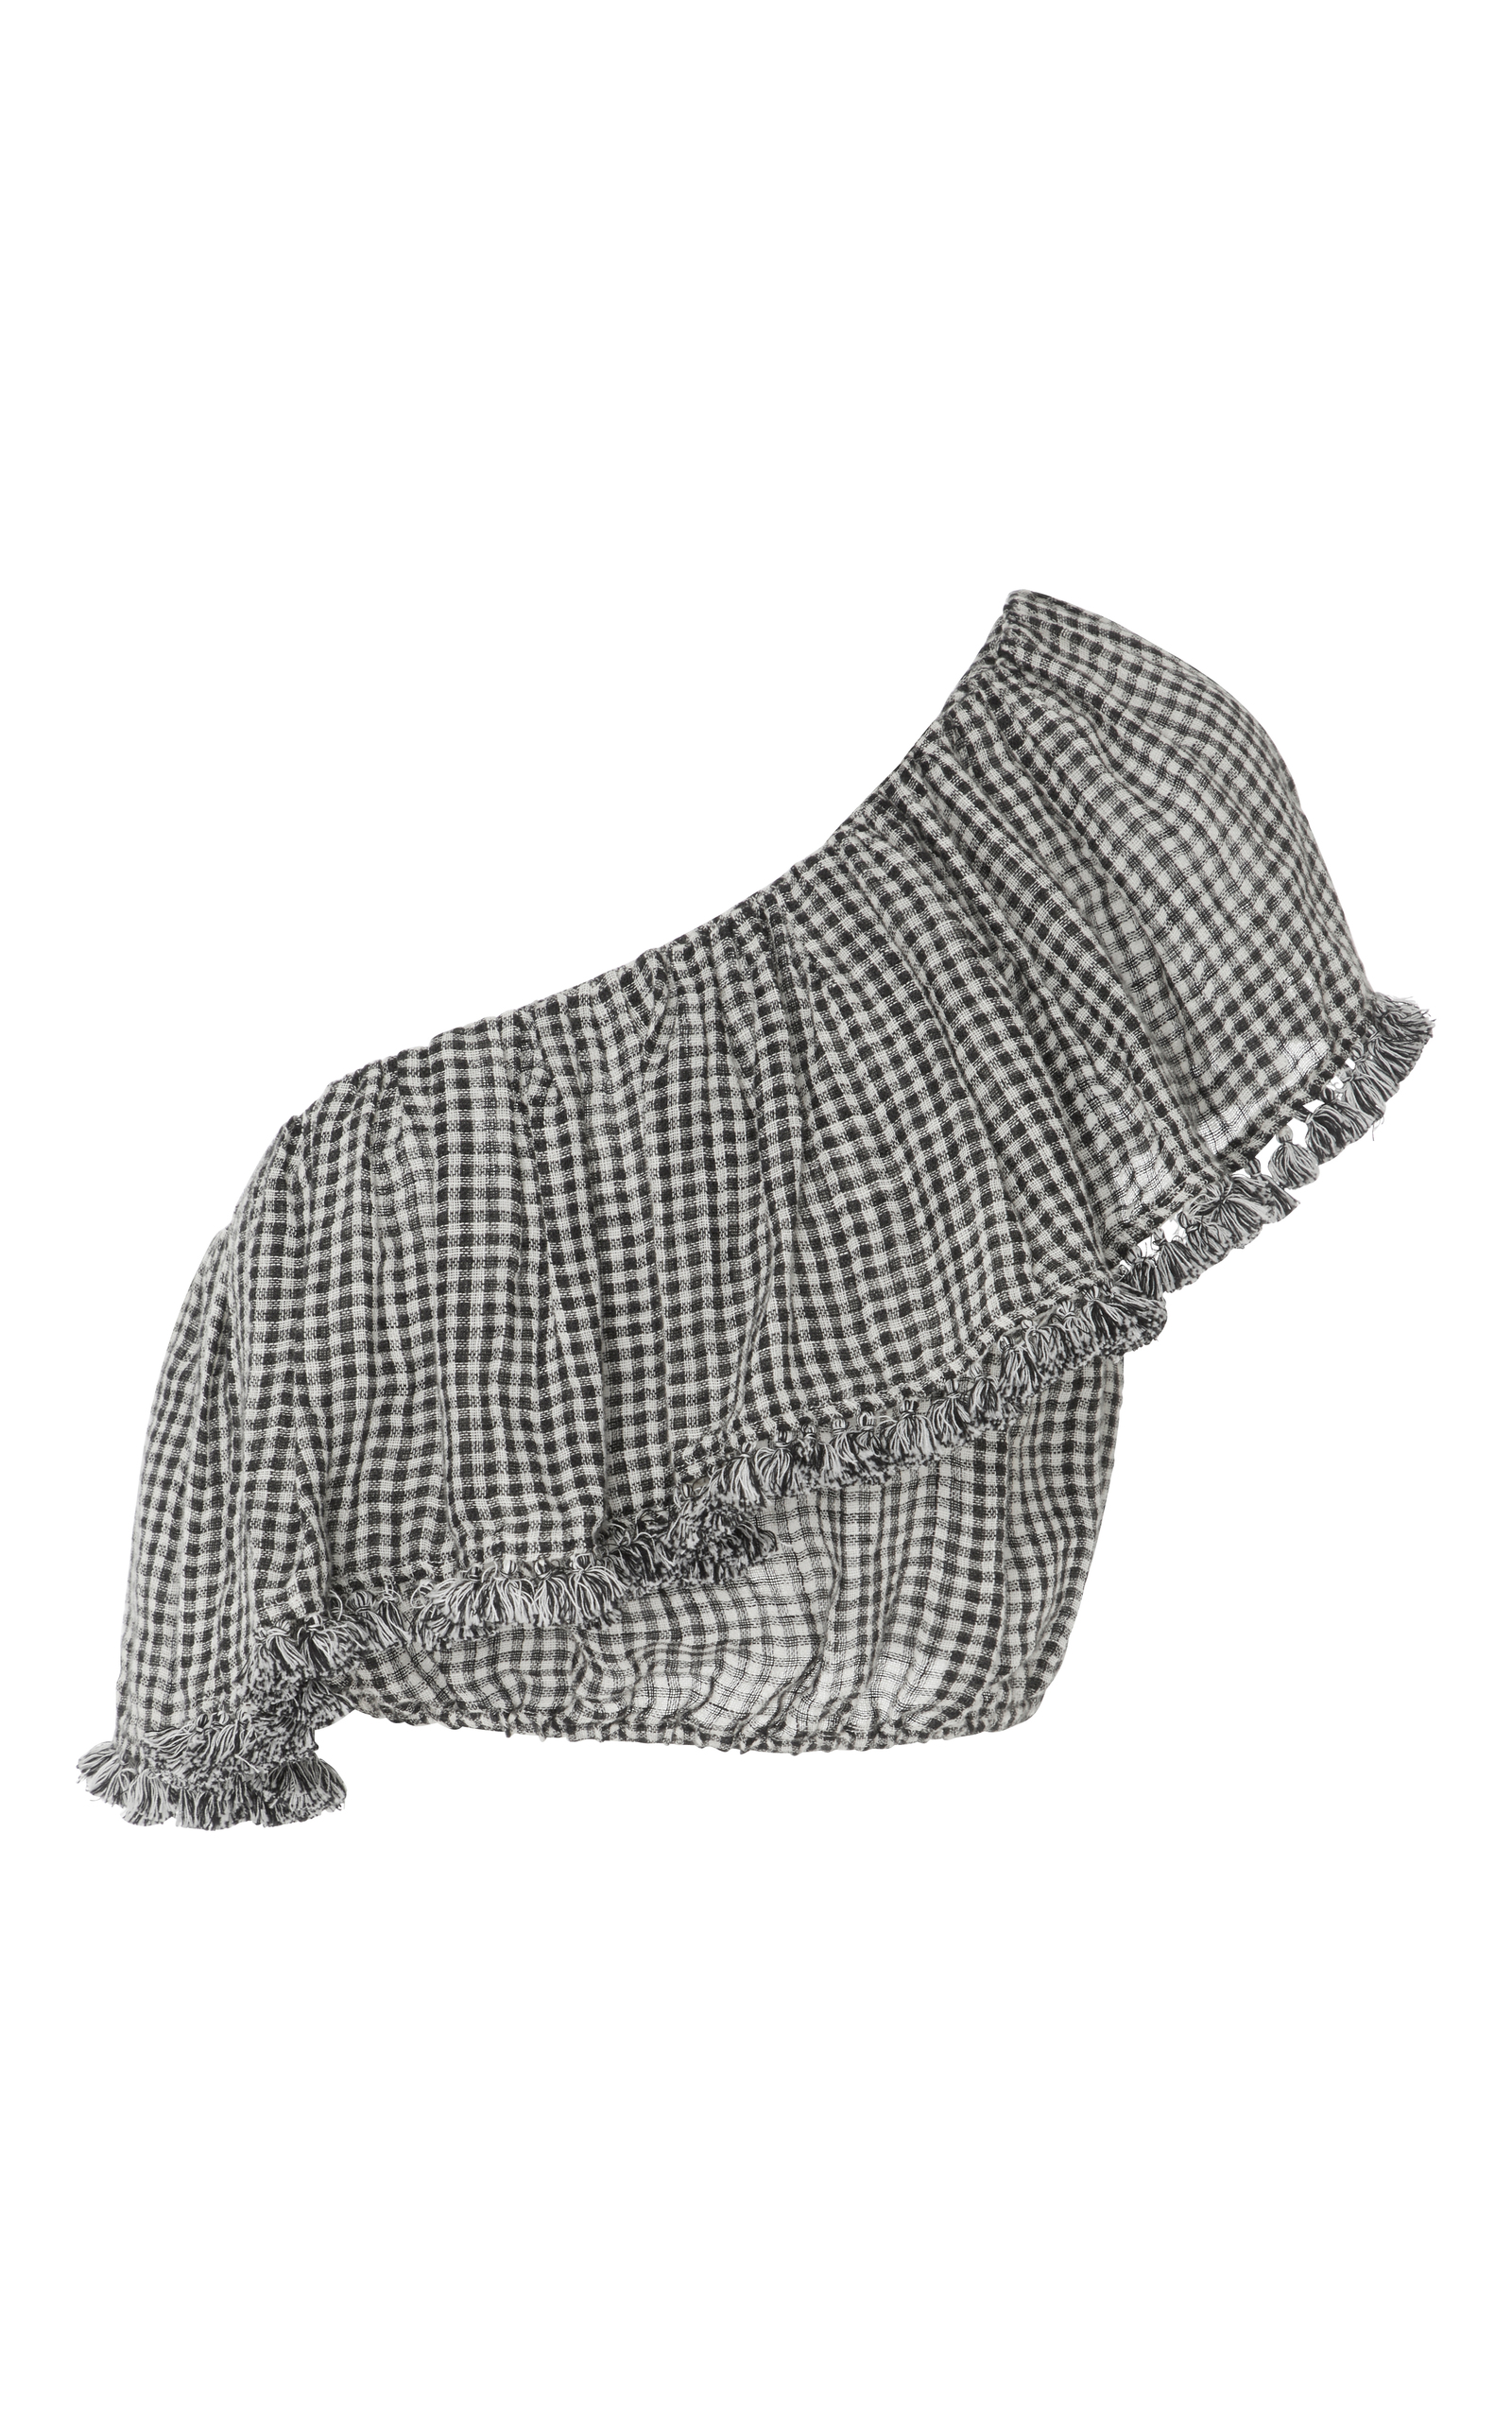 a64603092a3 ZimmermannParadiso Gingham One Shoulder Frill Top. CLOSE. Loading